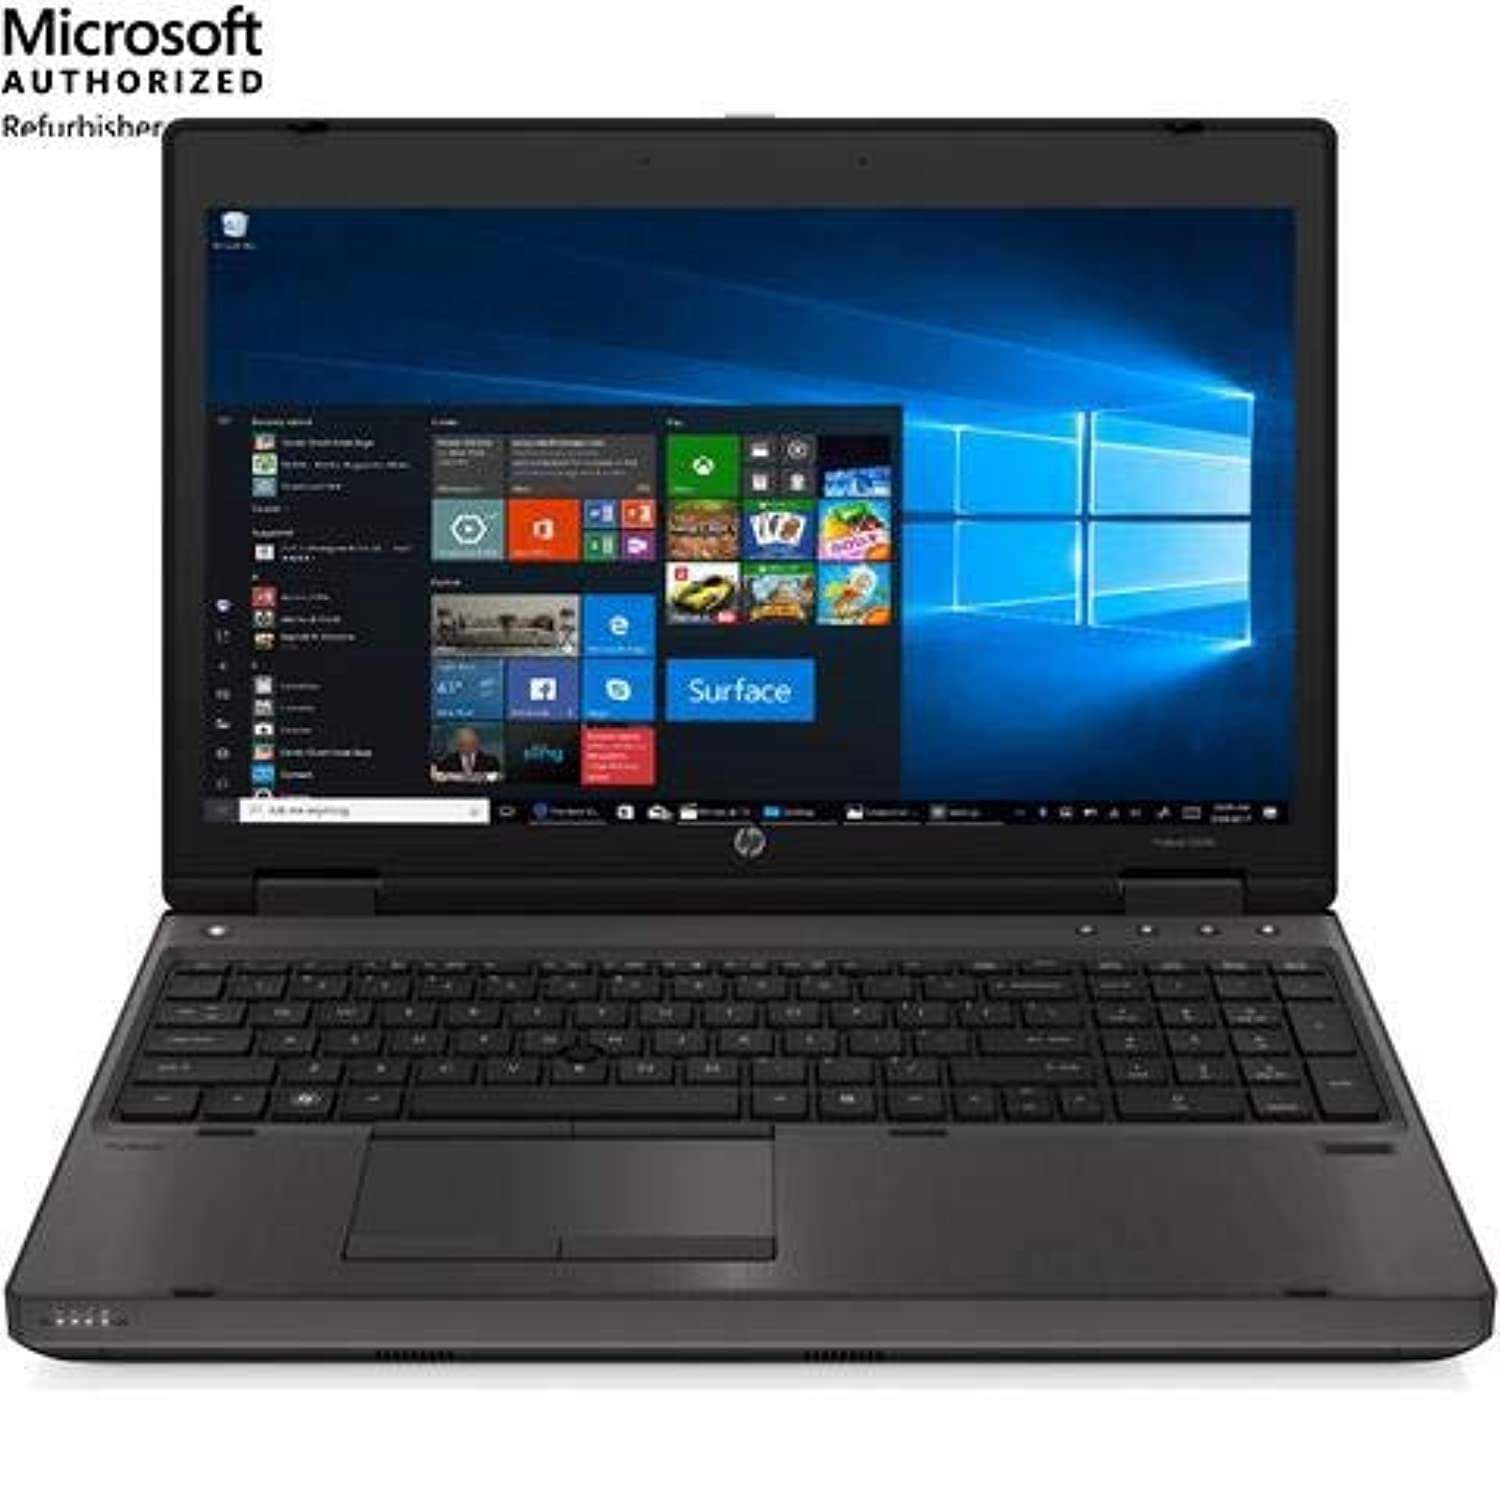 2018 HP ProBook 6560b Notebook 15.6'HD 1600x900, Intel Core i5 2520M 2.5GHz up to 3.2G, 8GB DDR3, 320GB, DP Port, VGA, Windows 10 64 Bit(Renewed)-Support-English/Spanish